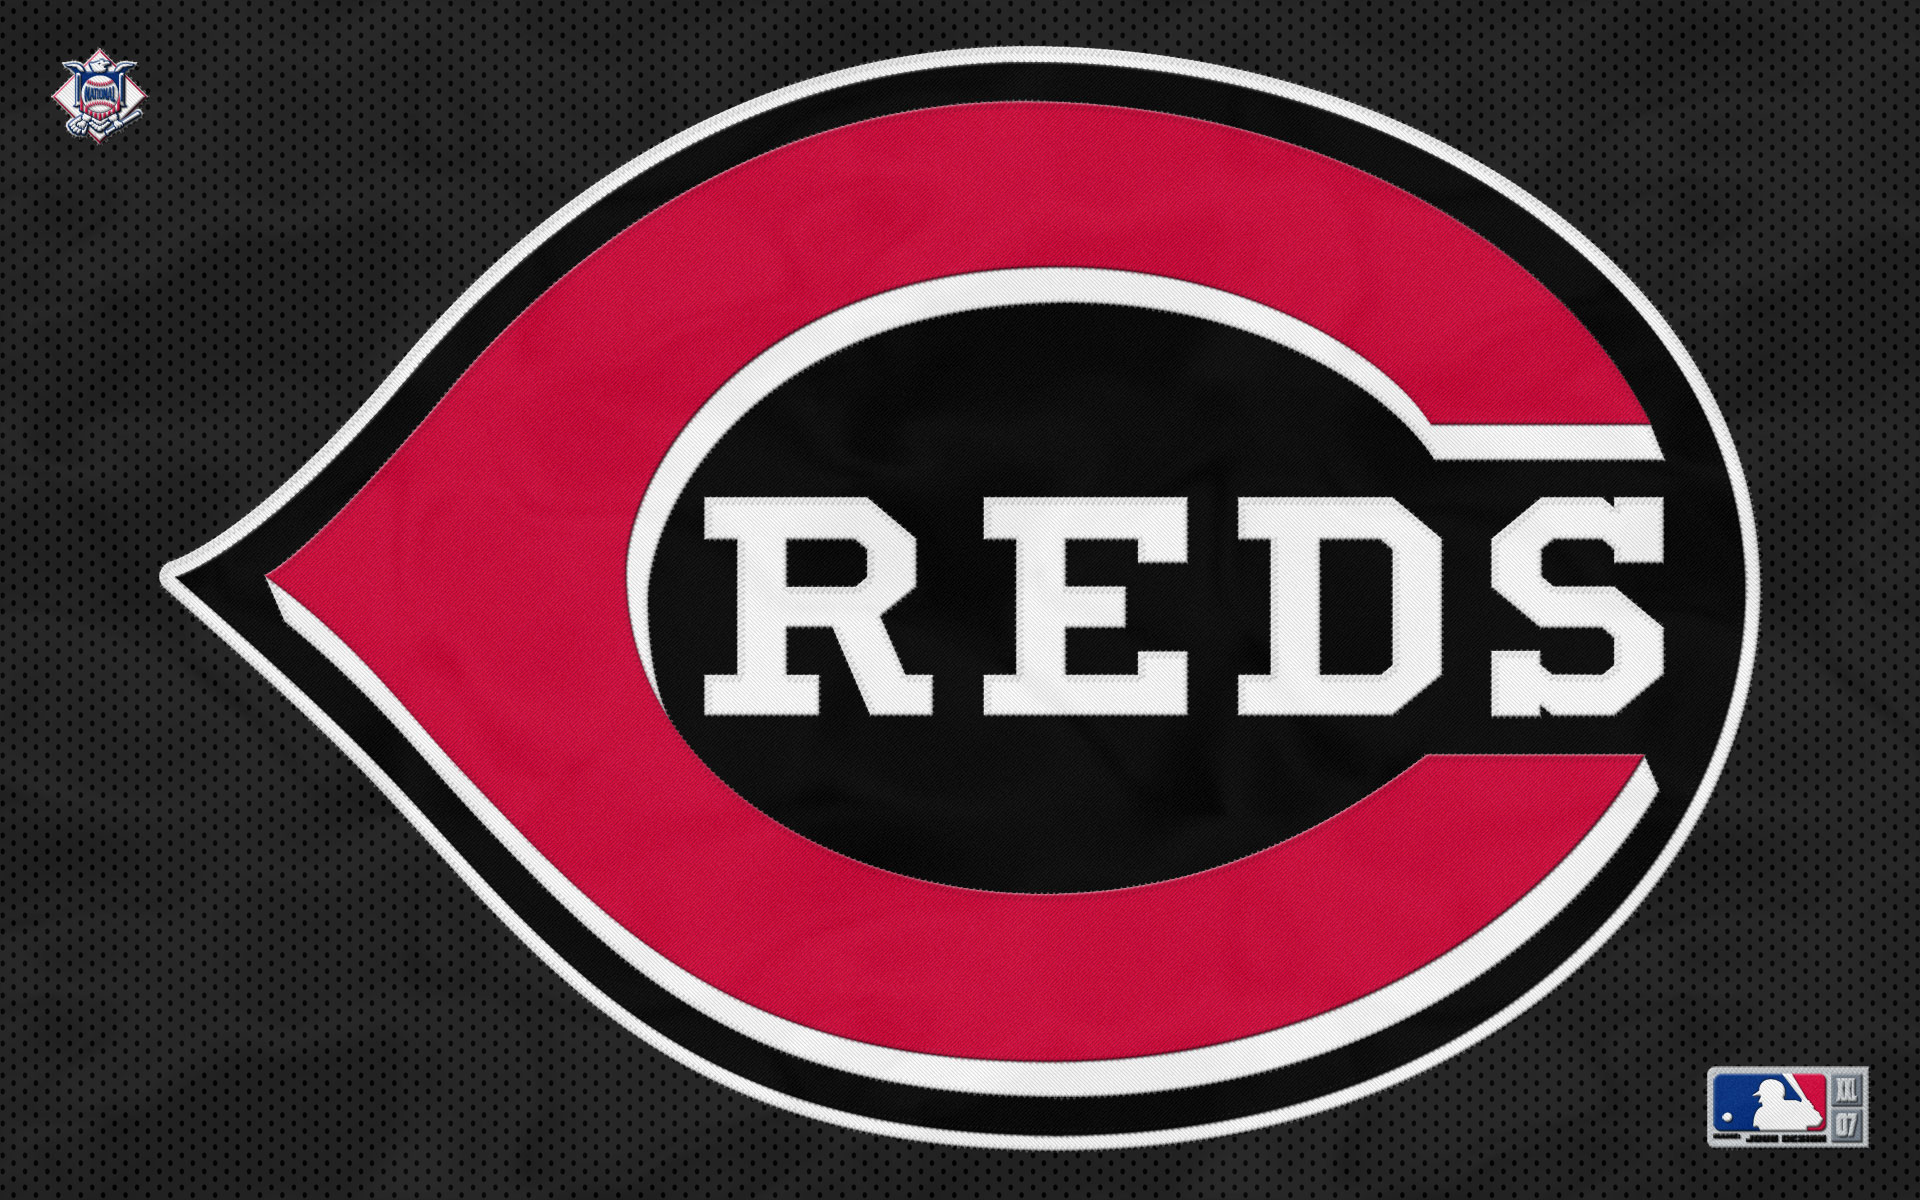 Cincinnati Reds Iphone Wallpaper Wallpapersafari